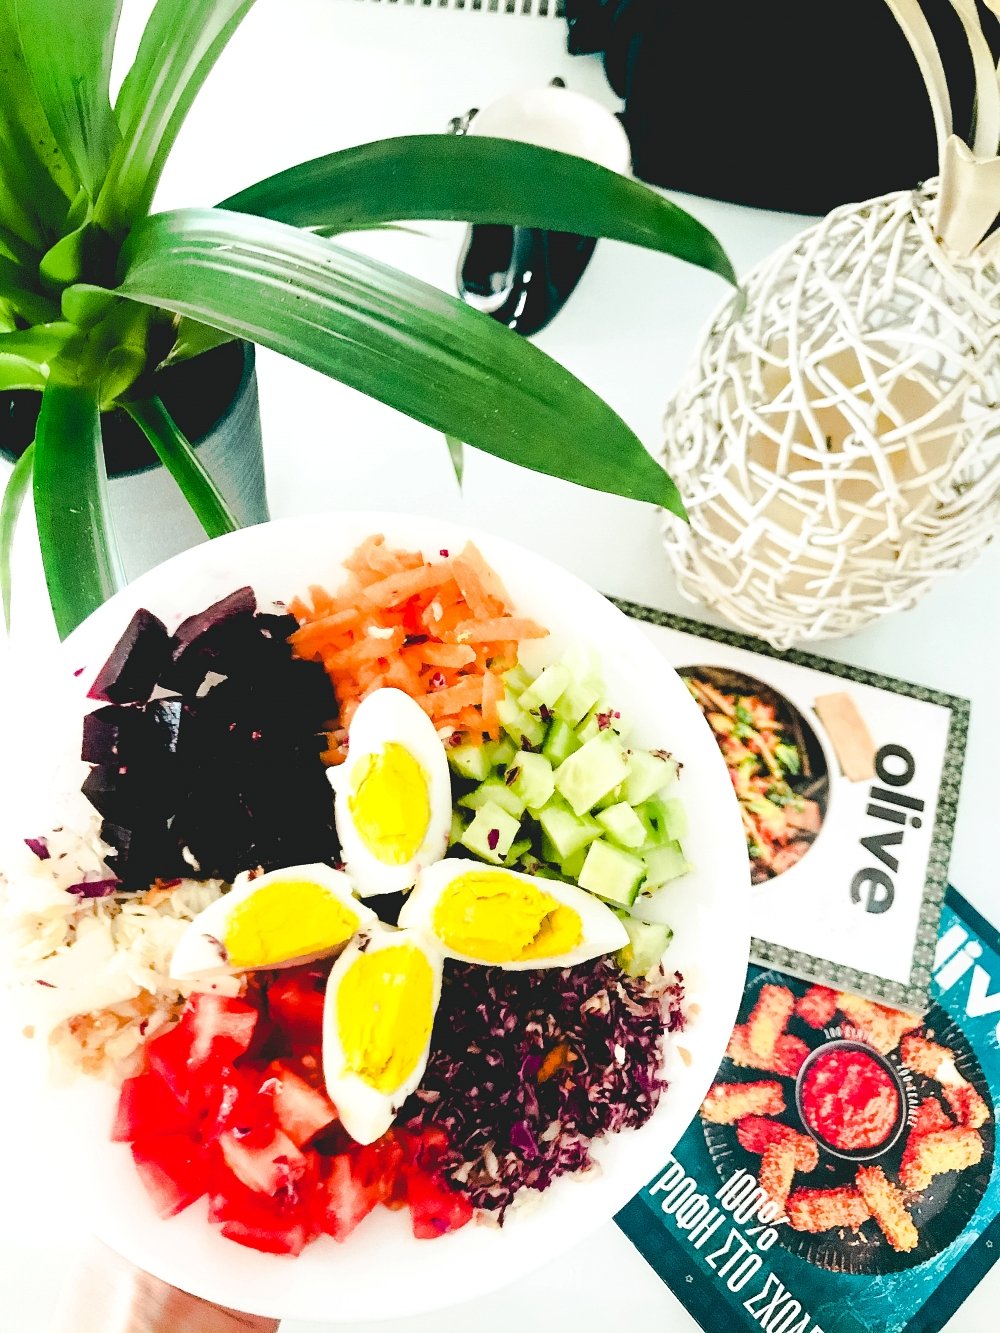 healthy salads as lunch meal, healthy lifestyle and clean eating, zdrav zivot zdrave salate zdravi obroci